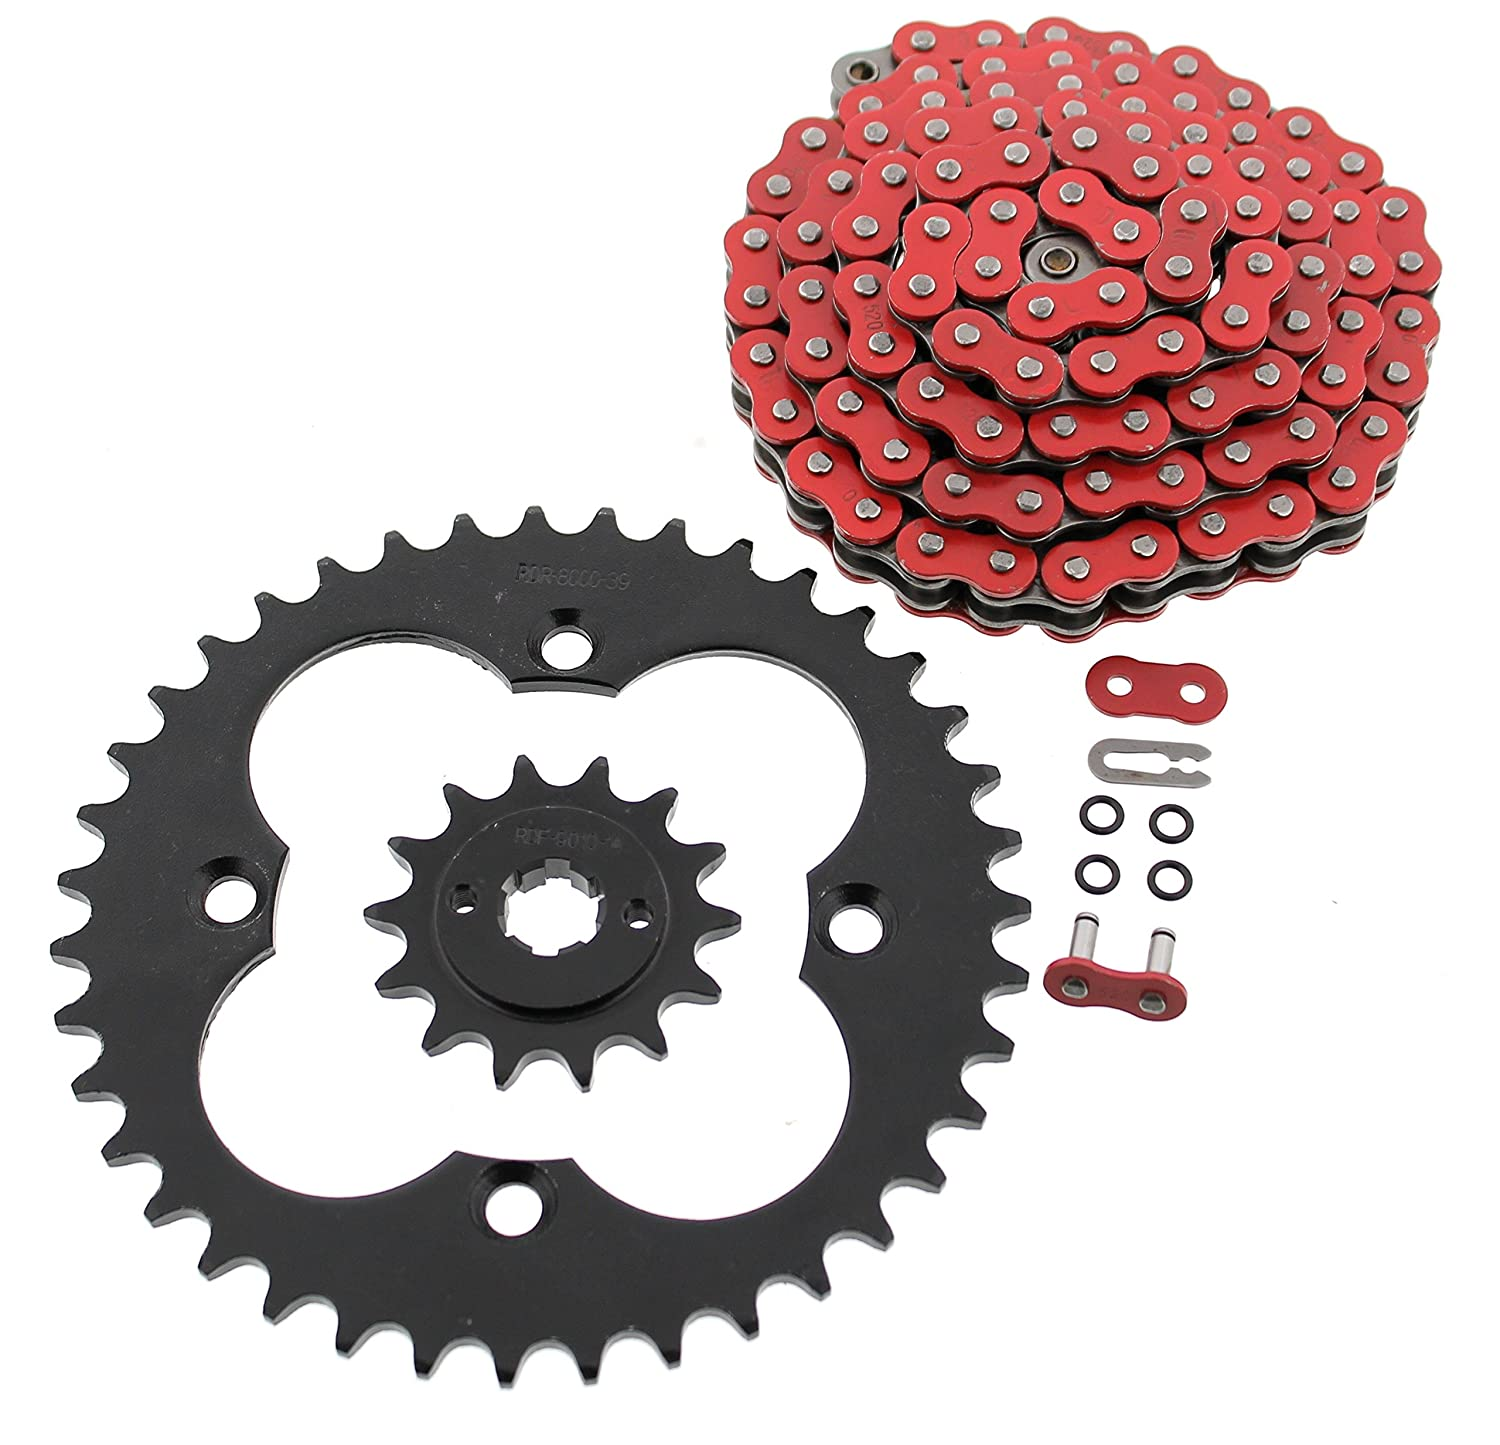 1986 1987 Fits Honda TRX250R TRX 250R Red O-Ring Chain and Black Sprocket 14//39 98L